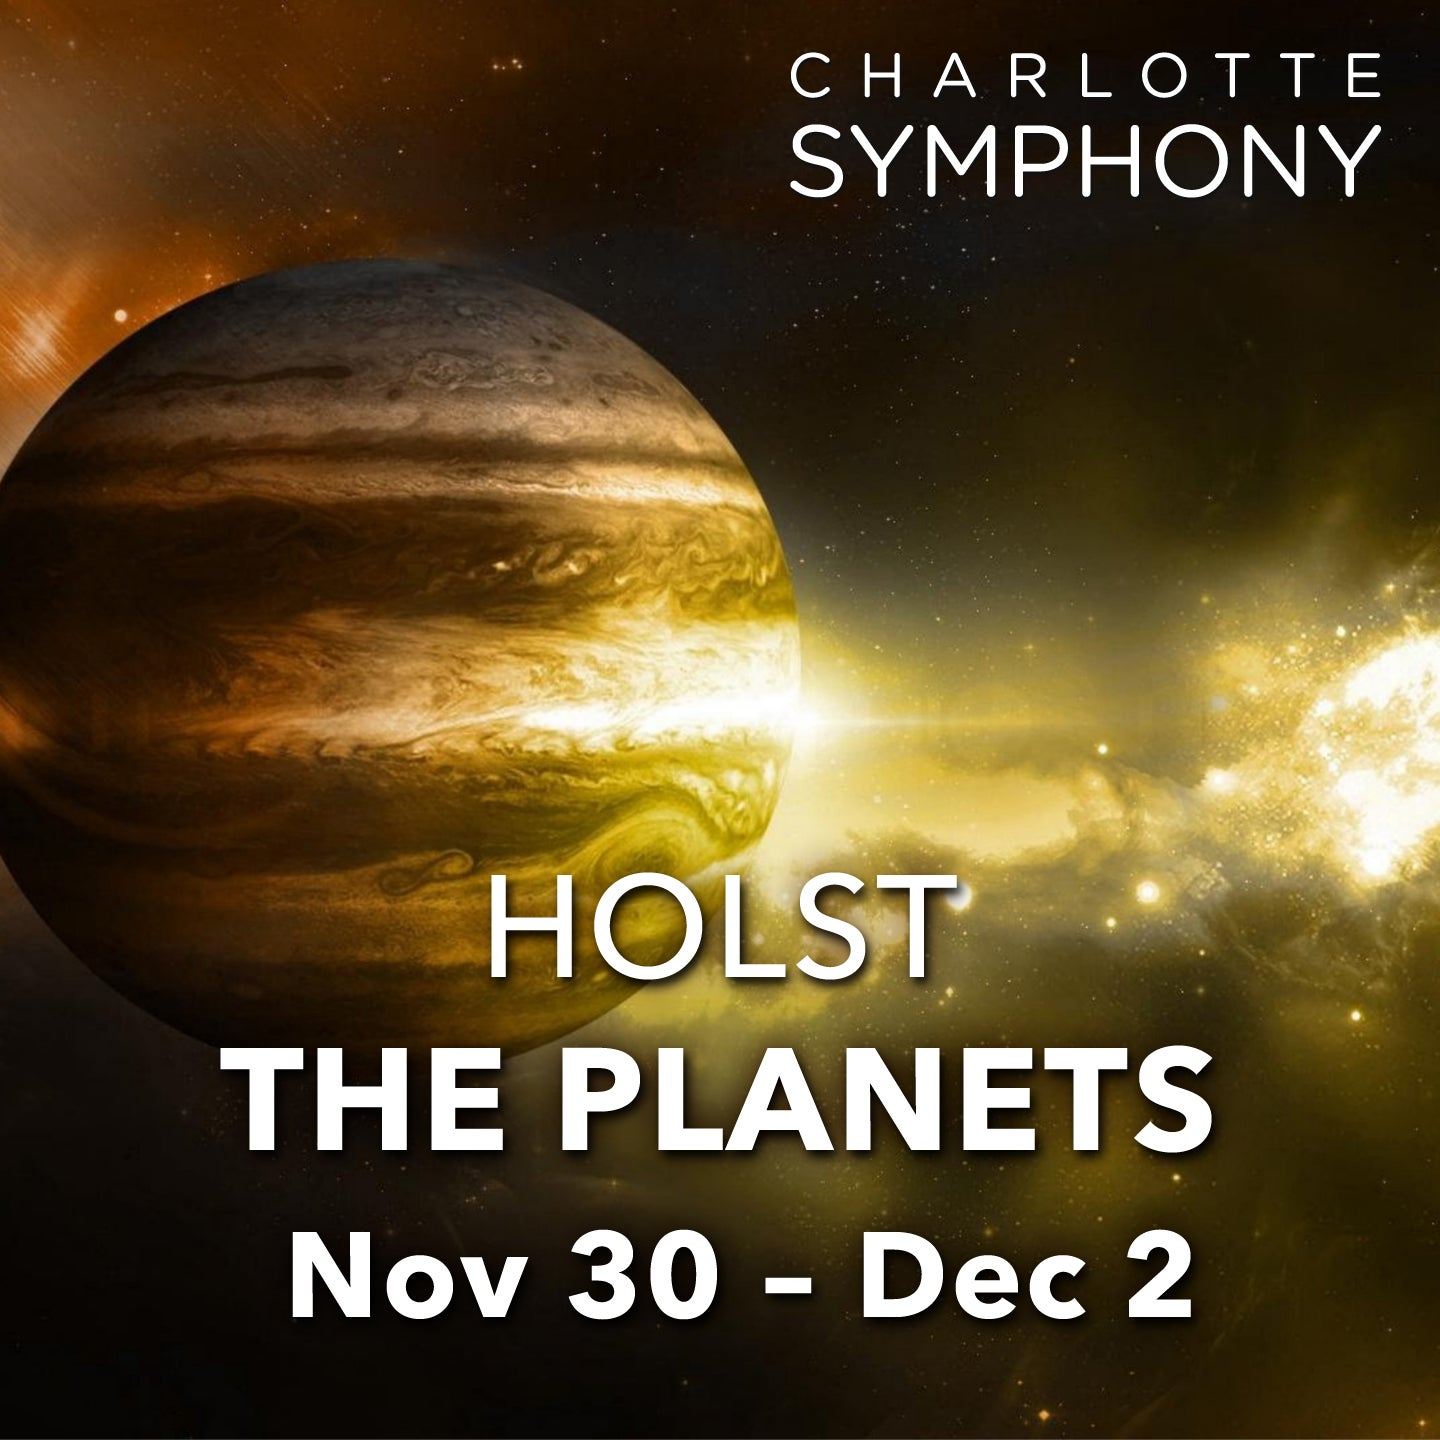 Charlotte Symphony: Holst: The Planets